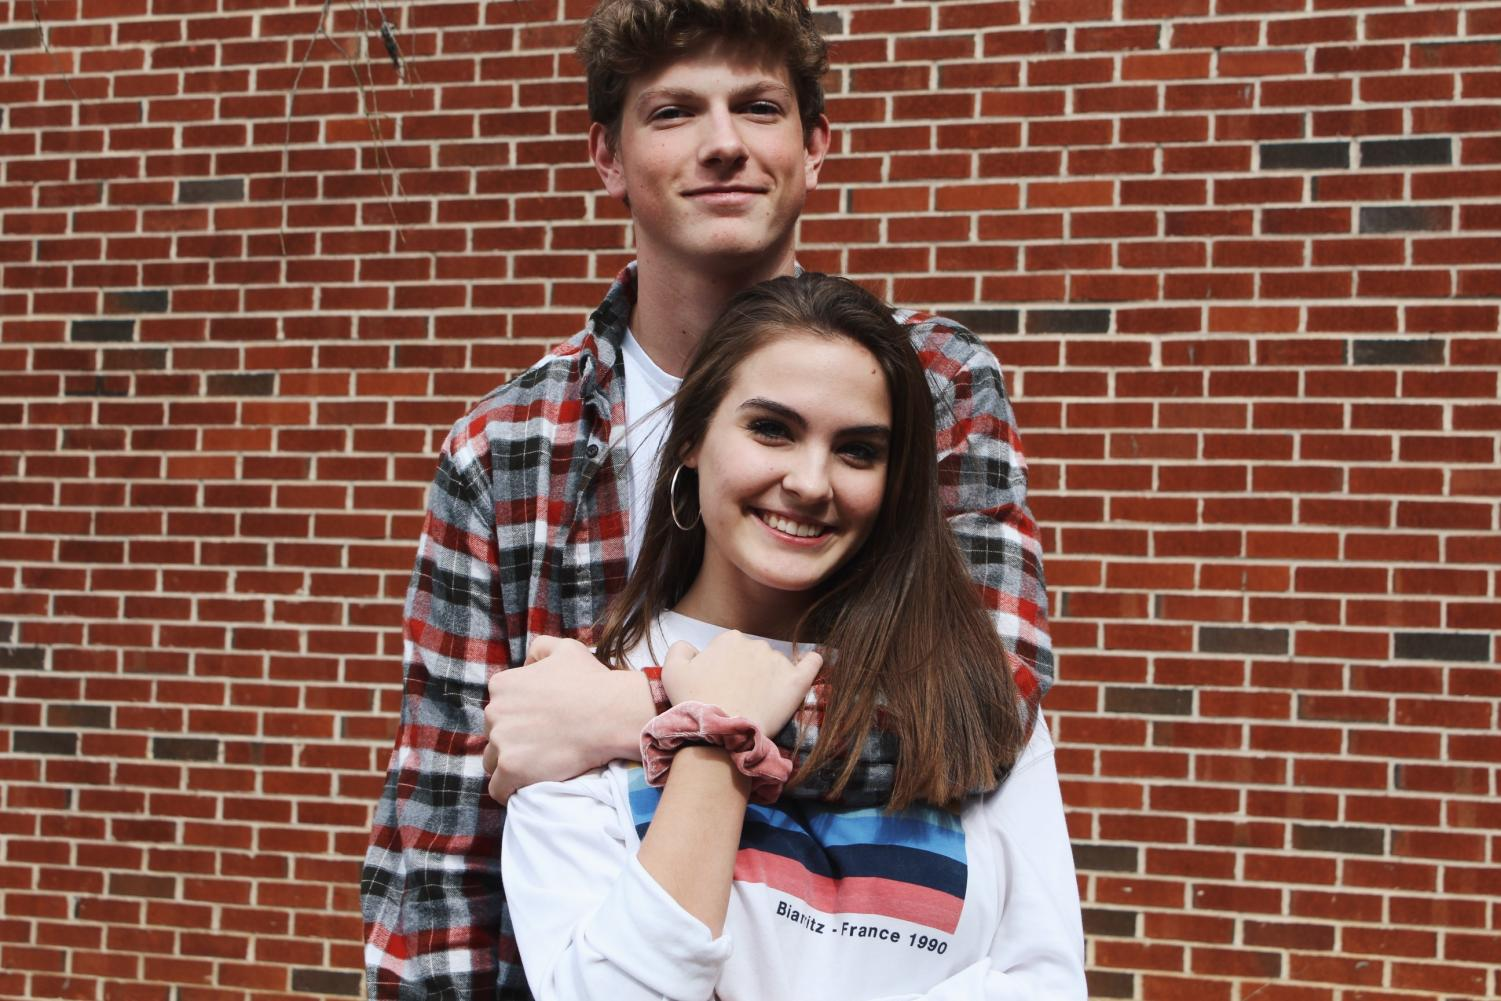 """Sophomores Lillian Southall and Walker Goodsite celebrate Valentine's Day by spending quality time with one another. """"I think Valentine's Day is special because it's the one day per year just based around love for your significant other and the day you mostly realize how lucky you are to be with someone, like Lillian, who is there for you and will be by your side every day. Today's the day you can show the most appreciation for that."""" Goodsite said."""